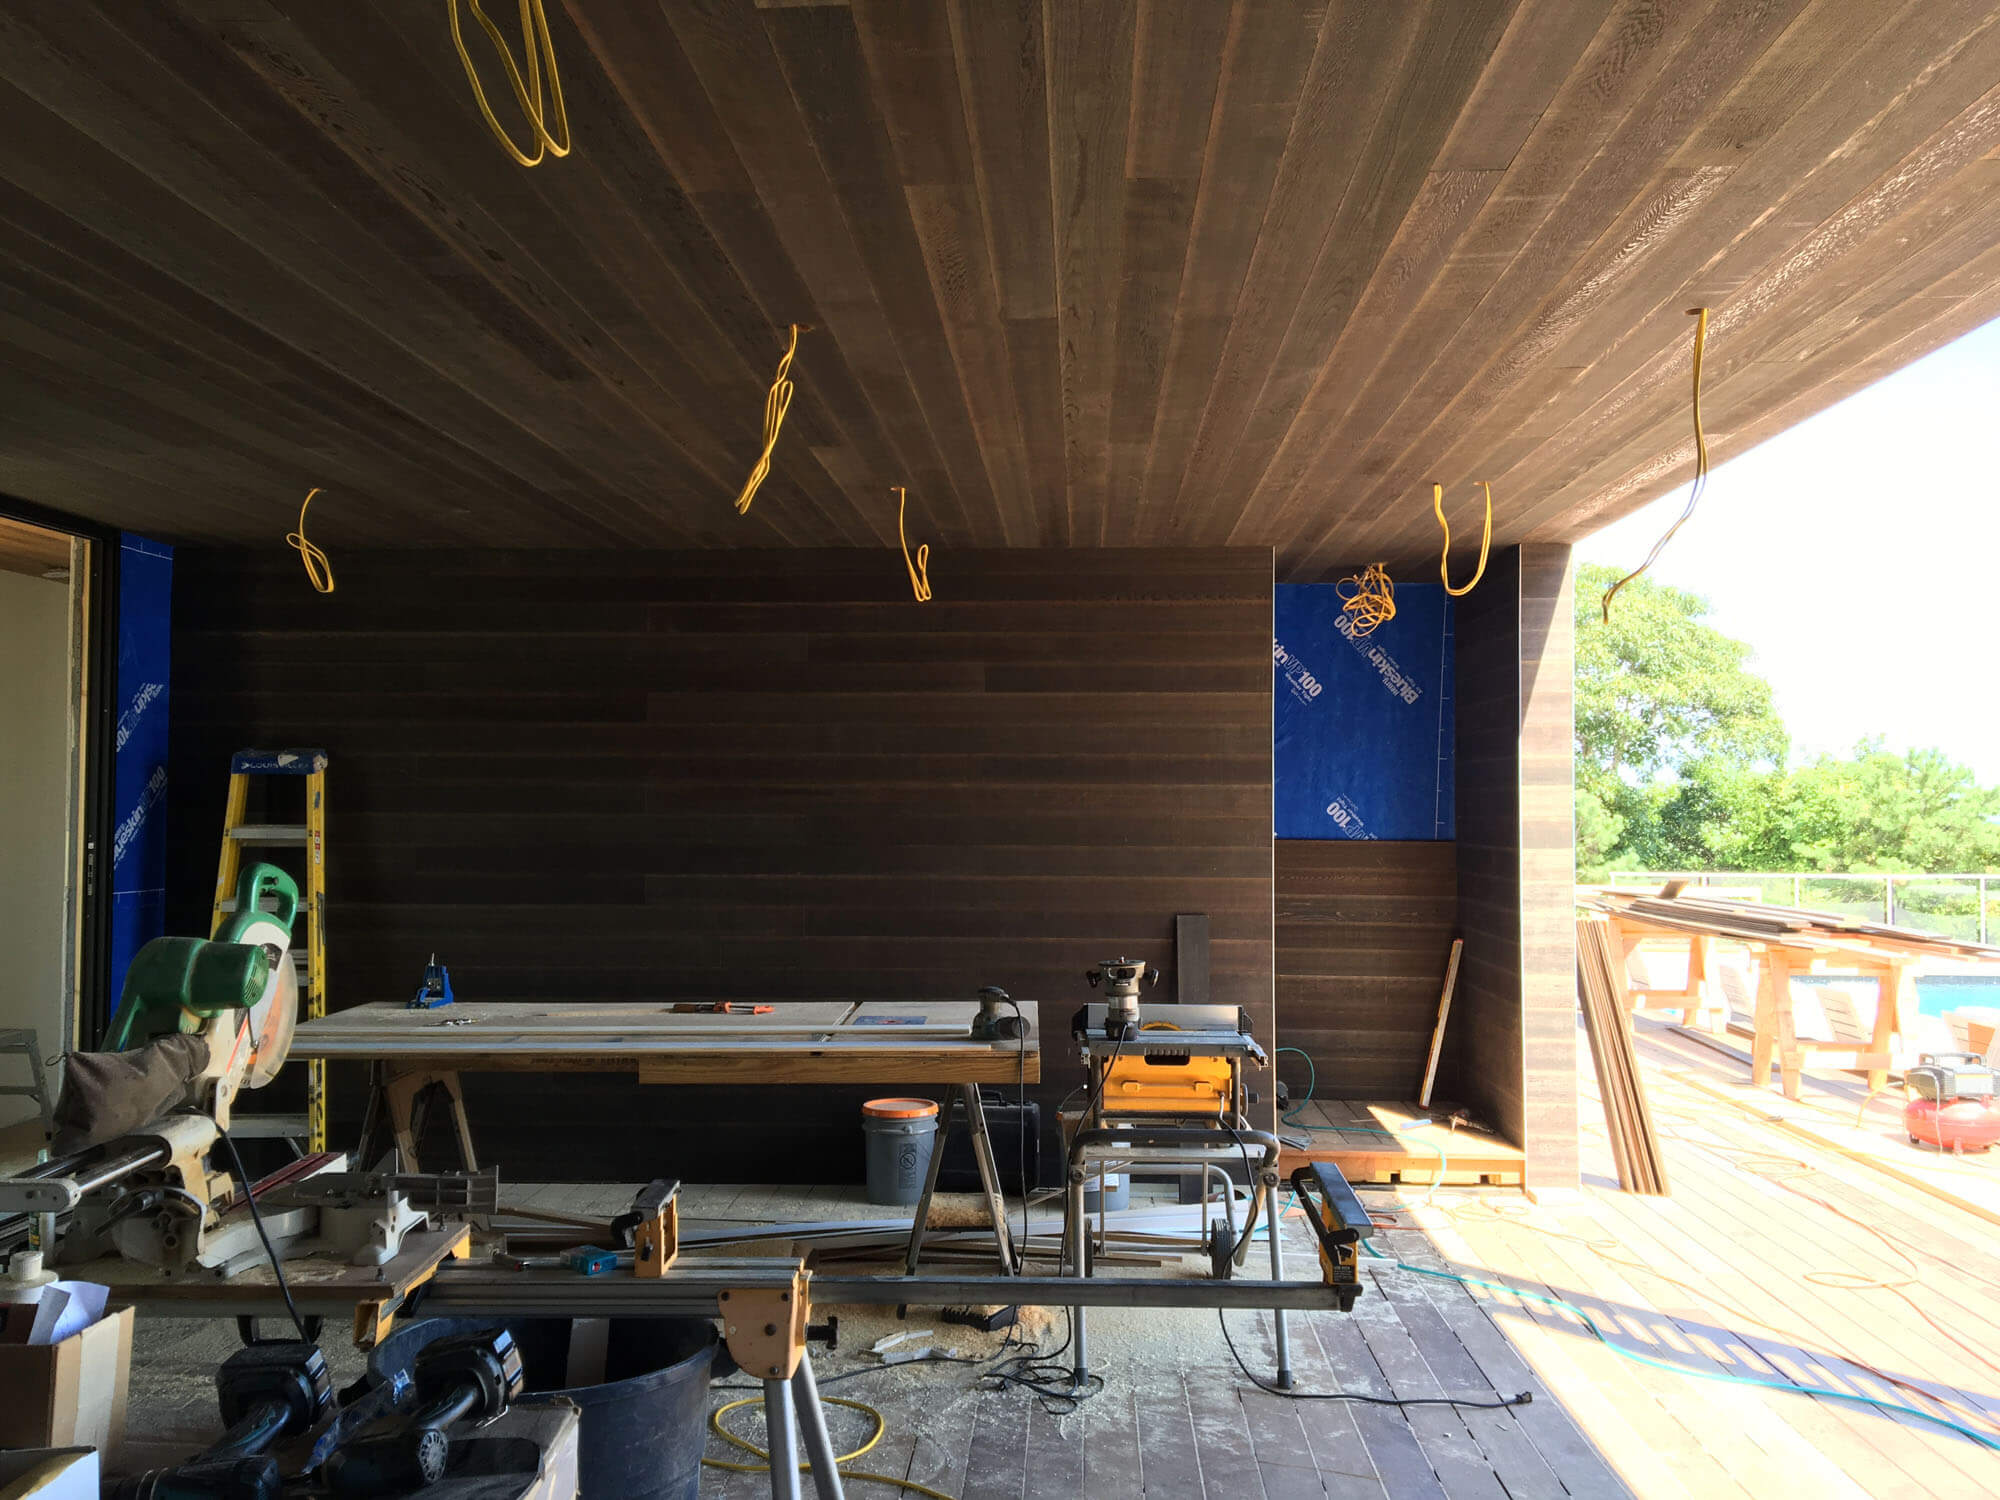 Enclosed deck space  -  A stained cedar wall separates a partially enclosed deck space from an exterior stair leading to the roof space.